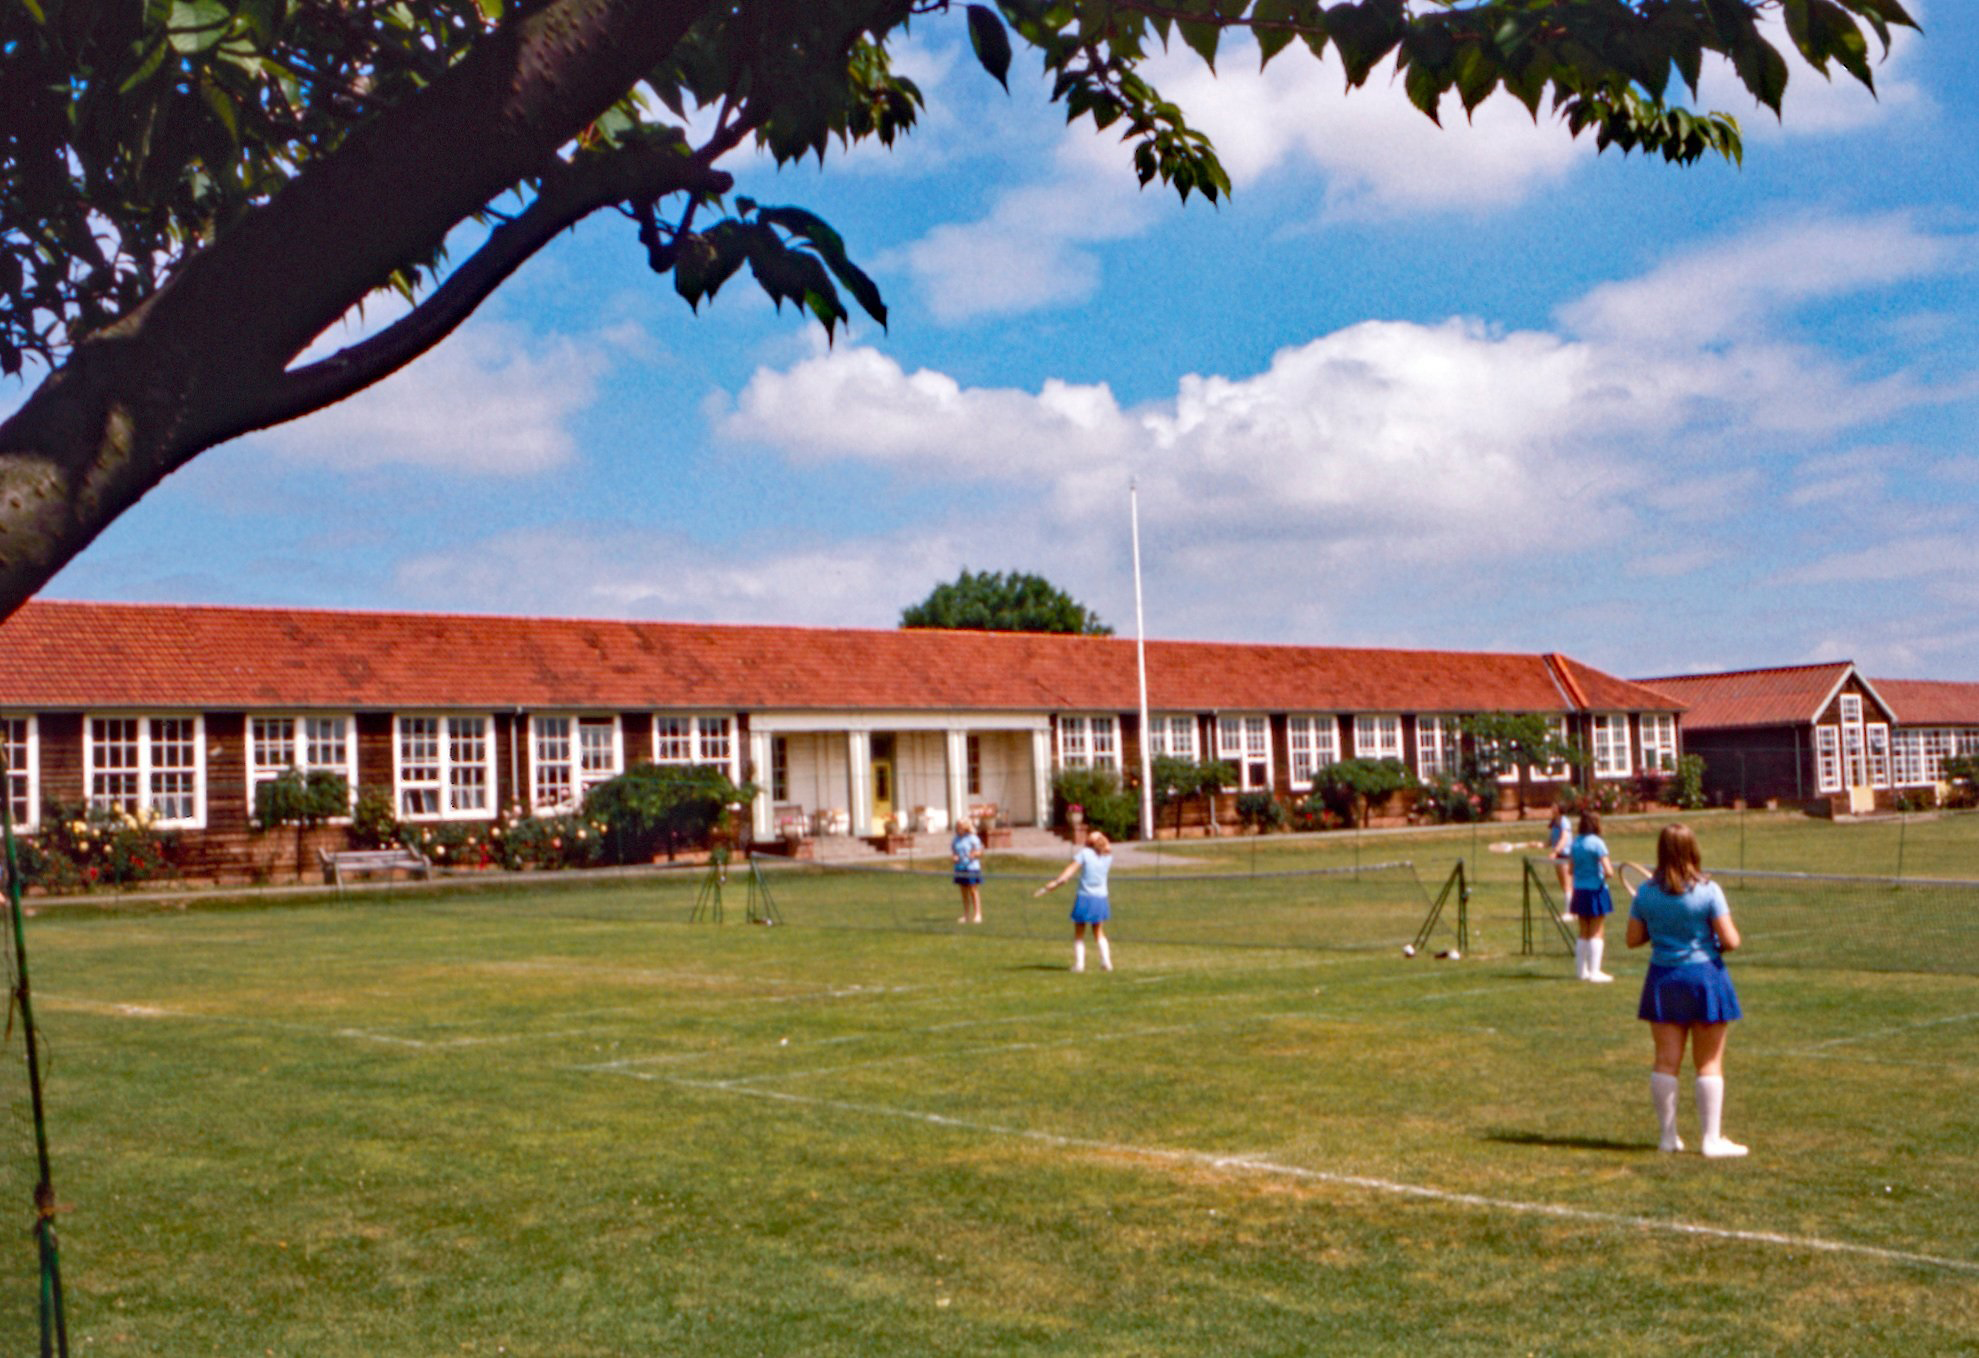 The old school in 1973